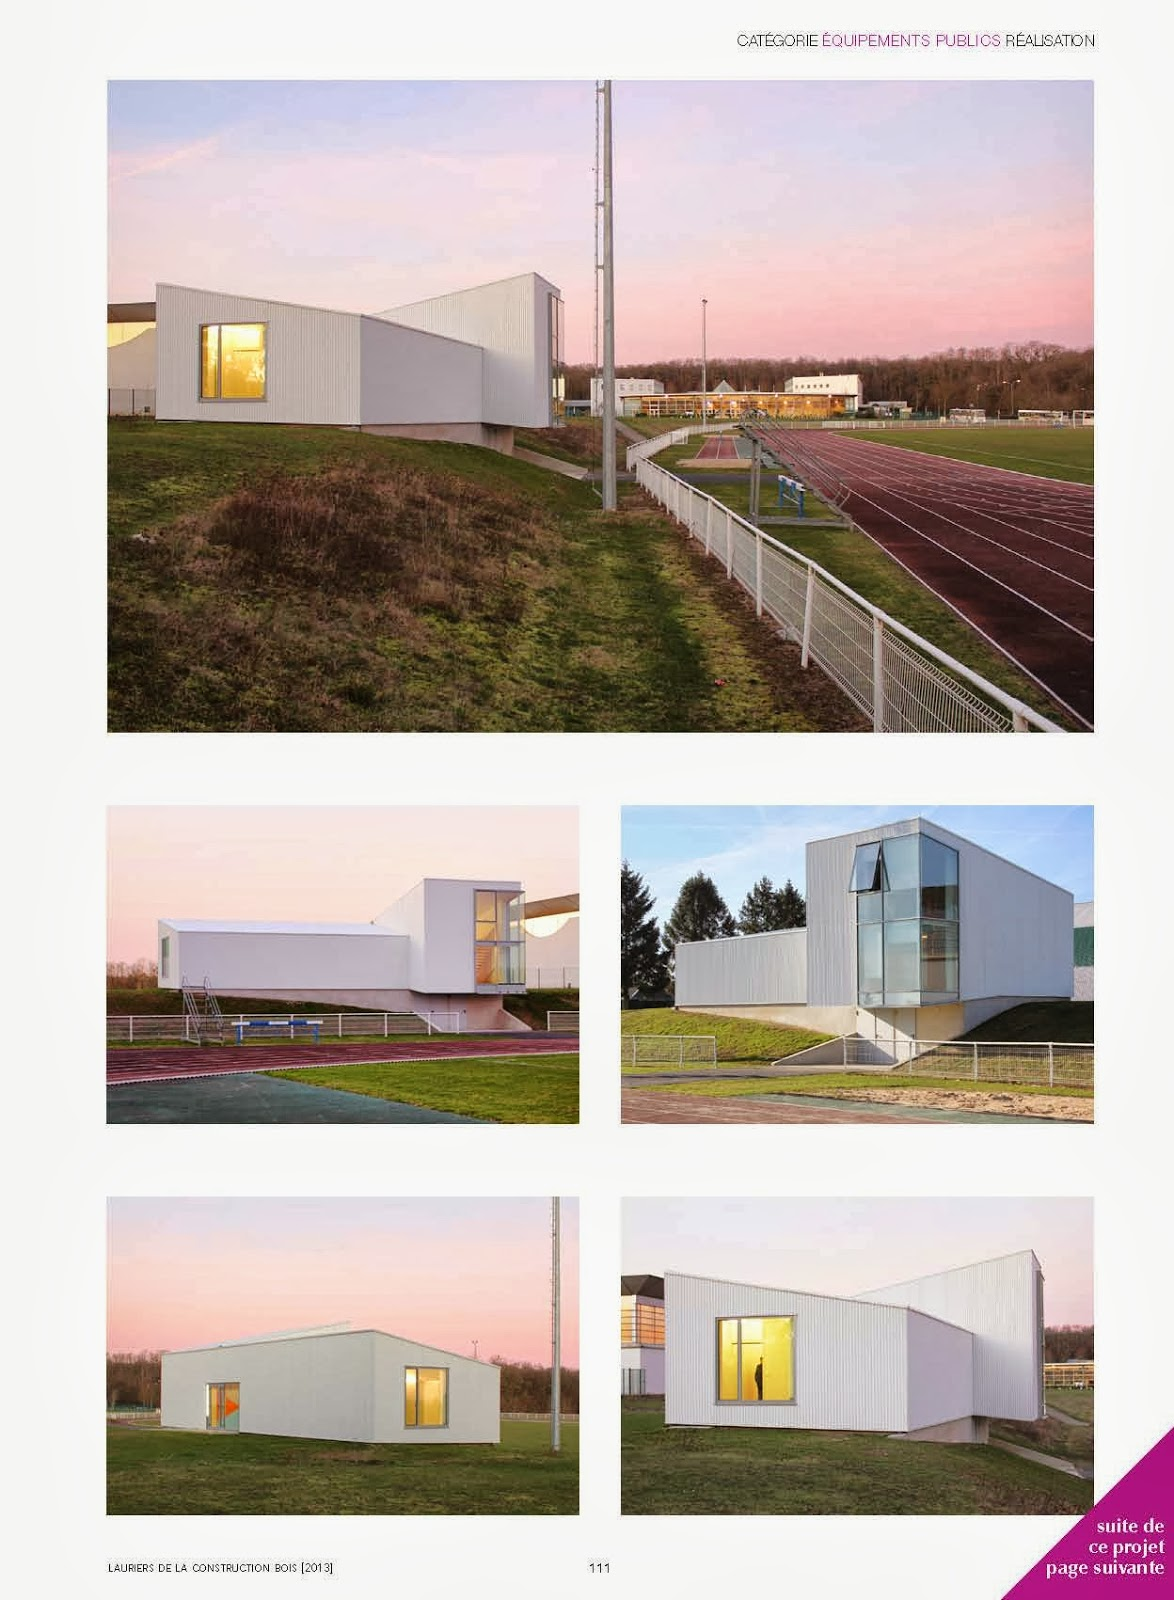 Owa agence d 39 architecture lauriers de la construction for Agence d architecture